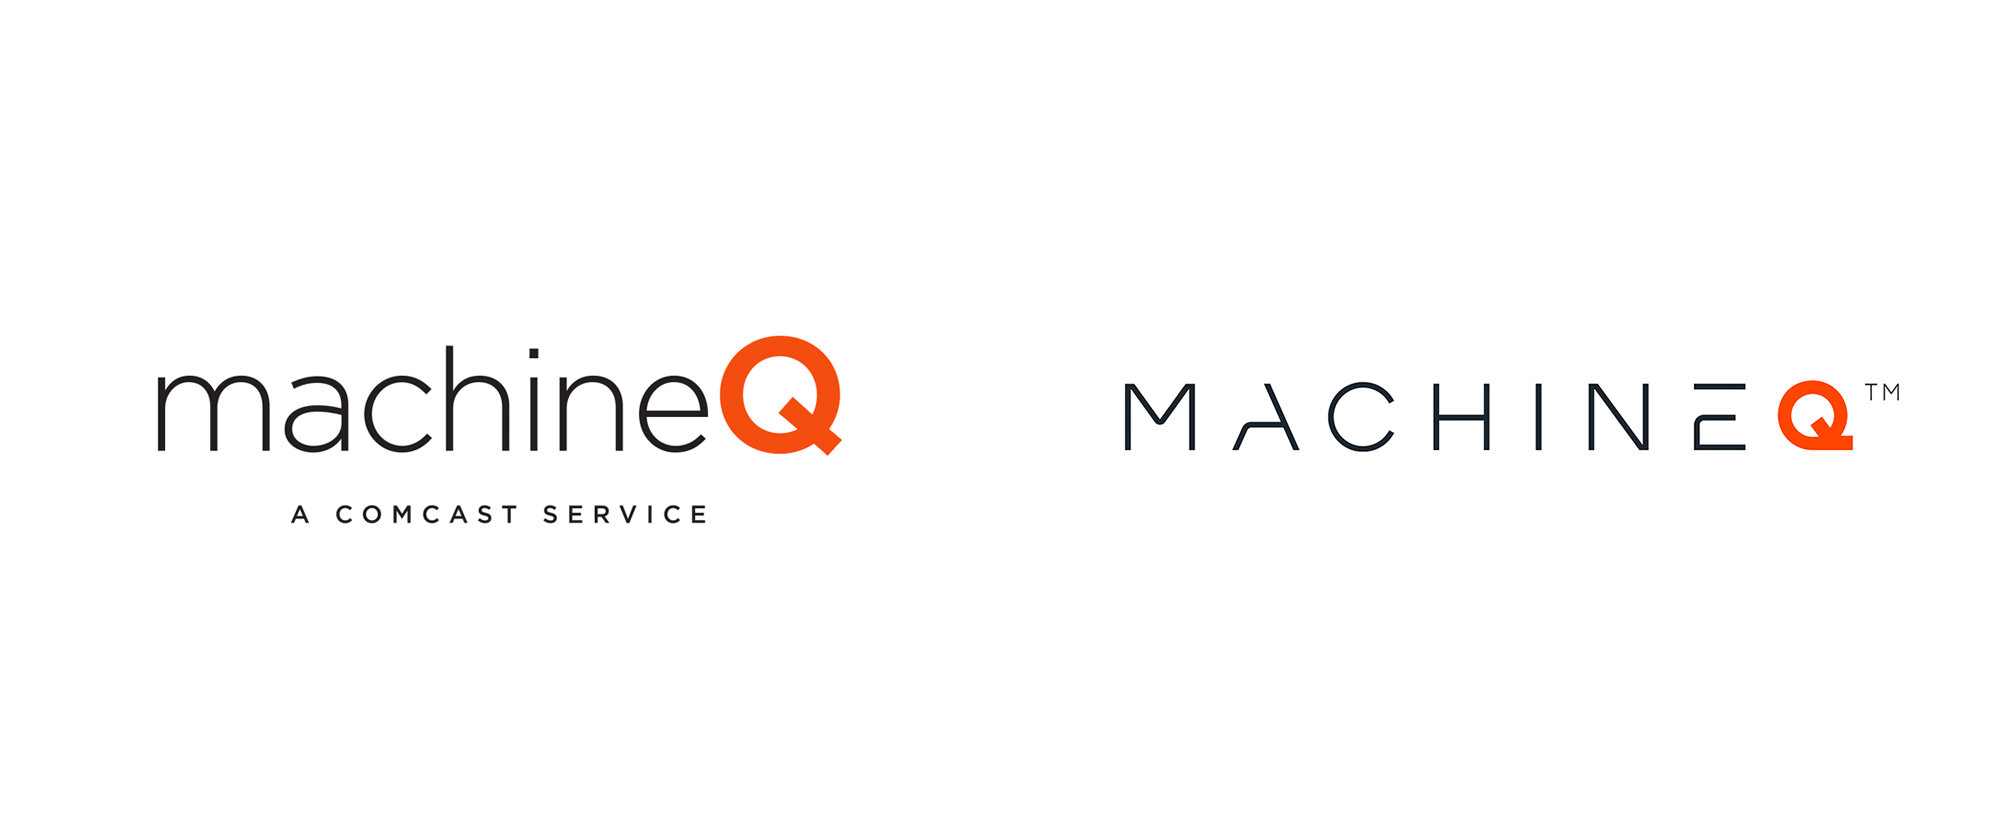 New Logo and Identity for MachineQ by Astro Studios